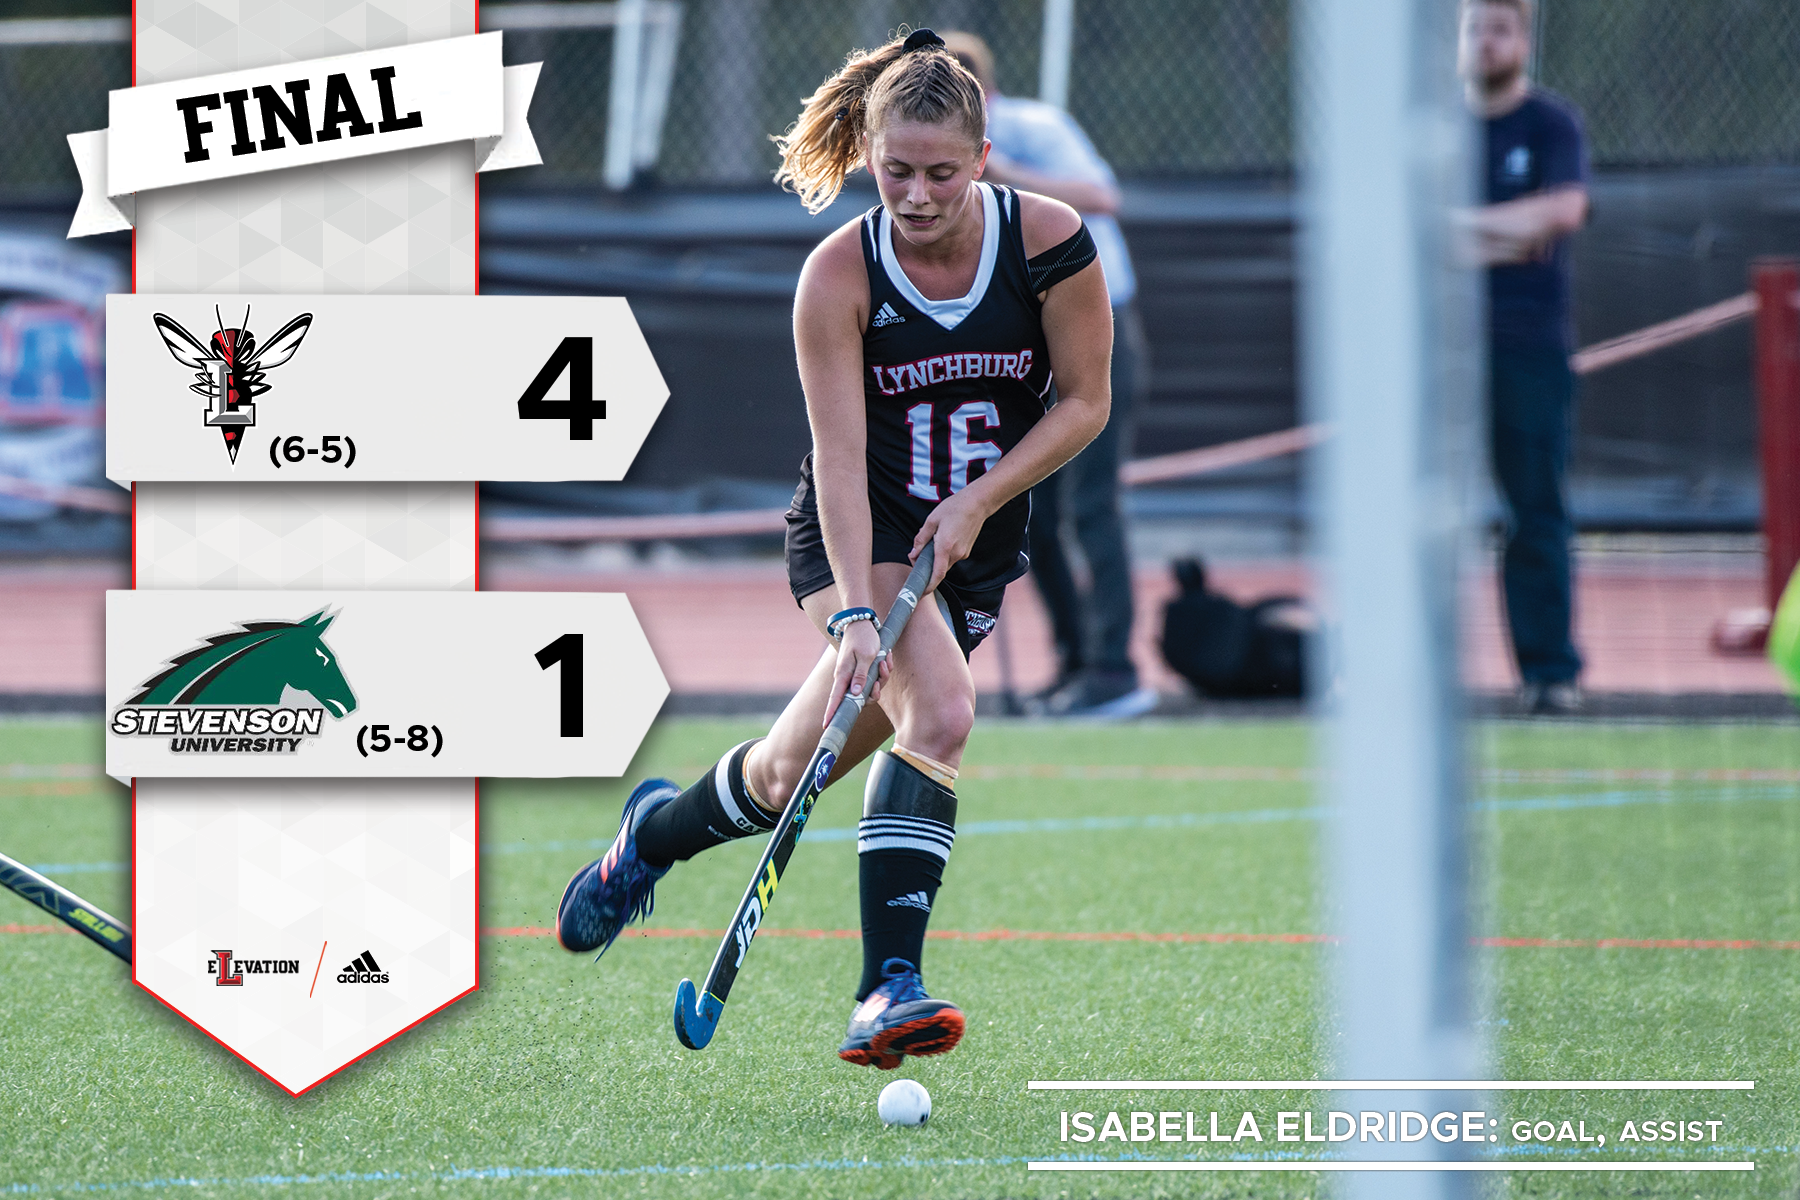 Isabella Eldridge hits a field hockey ball. Graphic showing final score 4-1 and team logos.